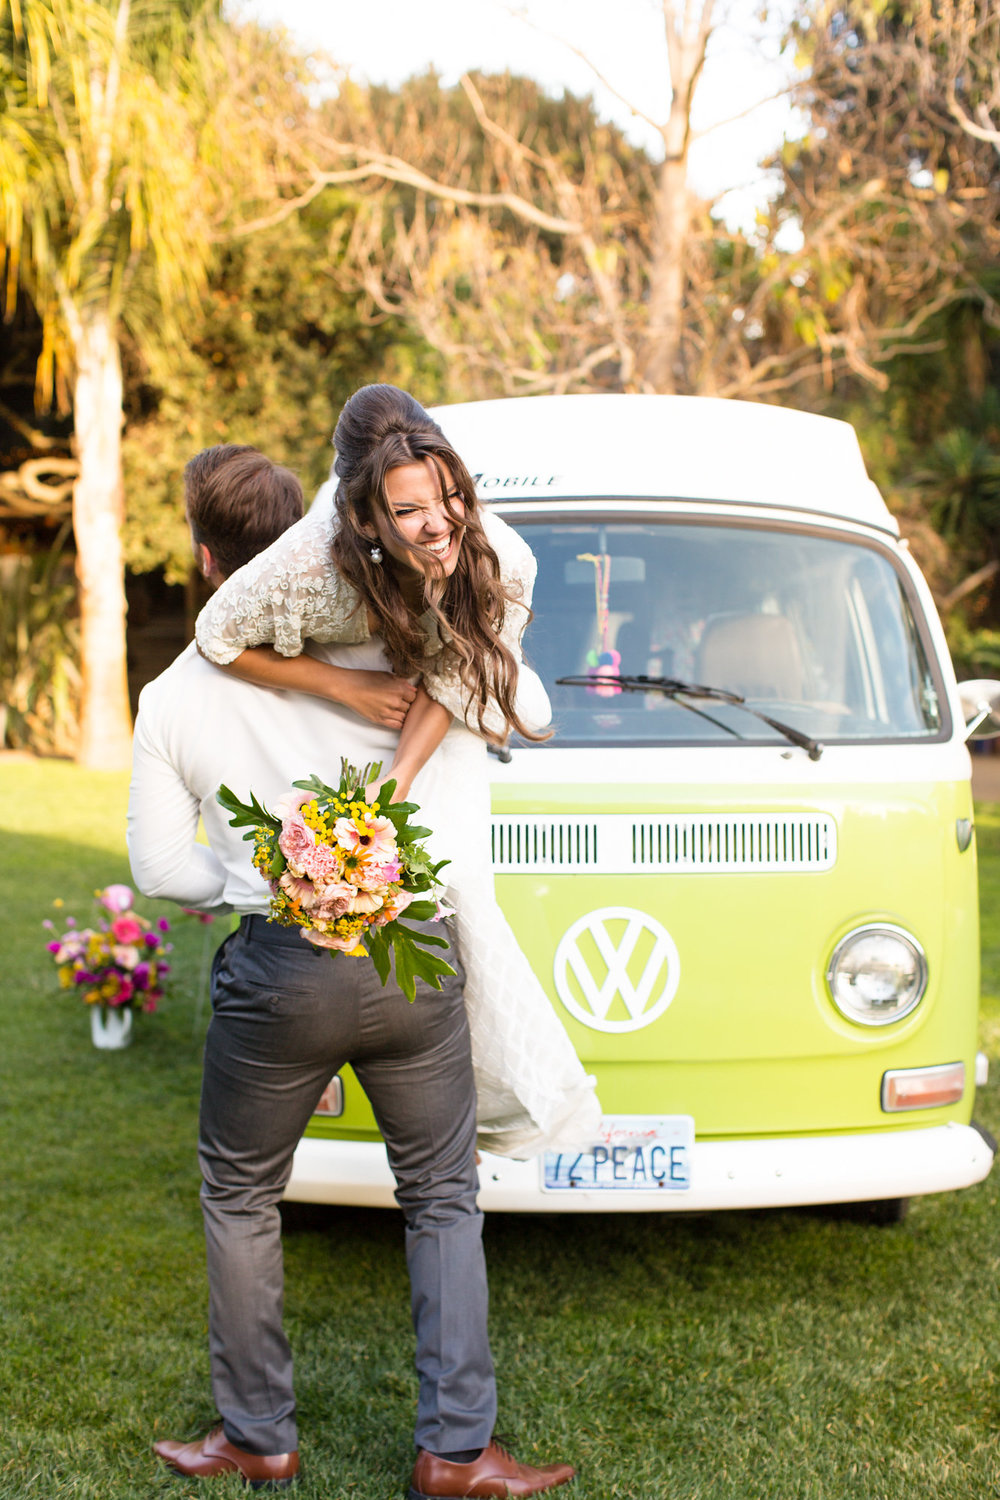 happy and playful couple in front of green vw bus kim baker beauty san jose california makeup artist wedding styled photoshoot at the holly farm in carmel